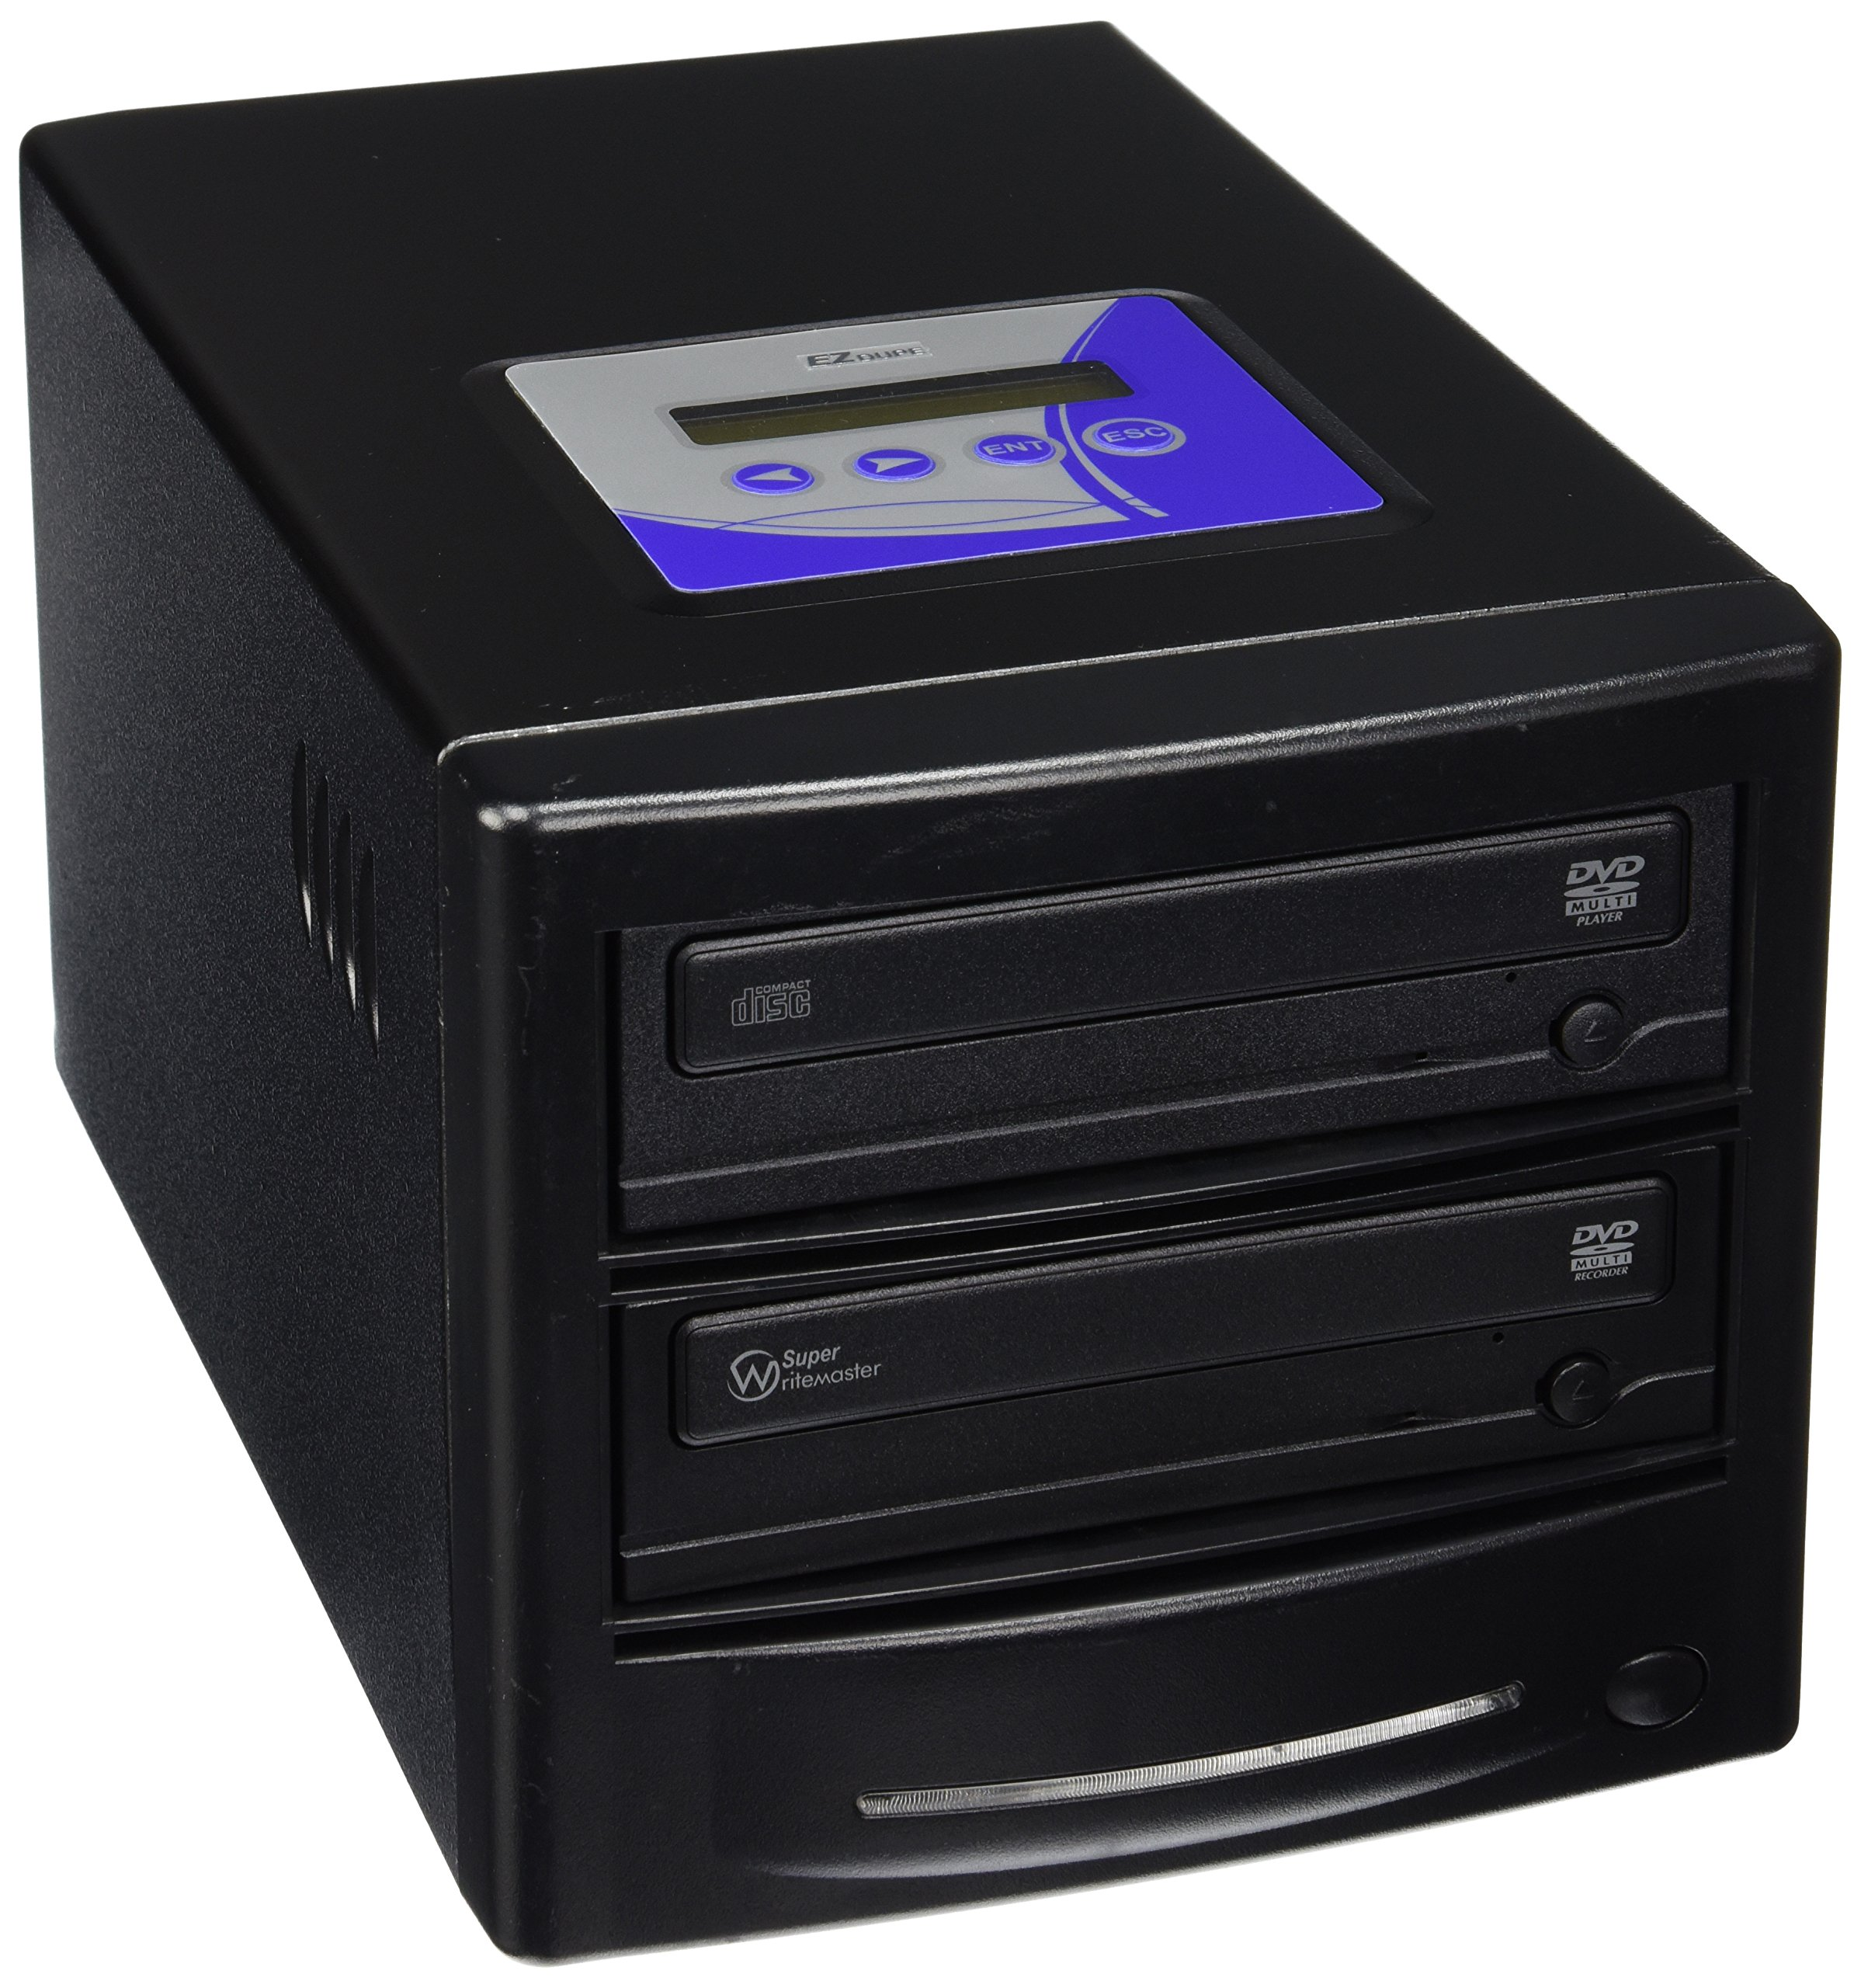 EZ Dupe EZD1TDVDLGB Professional 1 Target 24x DVD/CD Duplicator Optical Drive 2.5'' by EZ DUPE